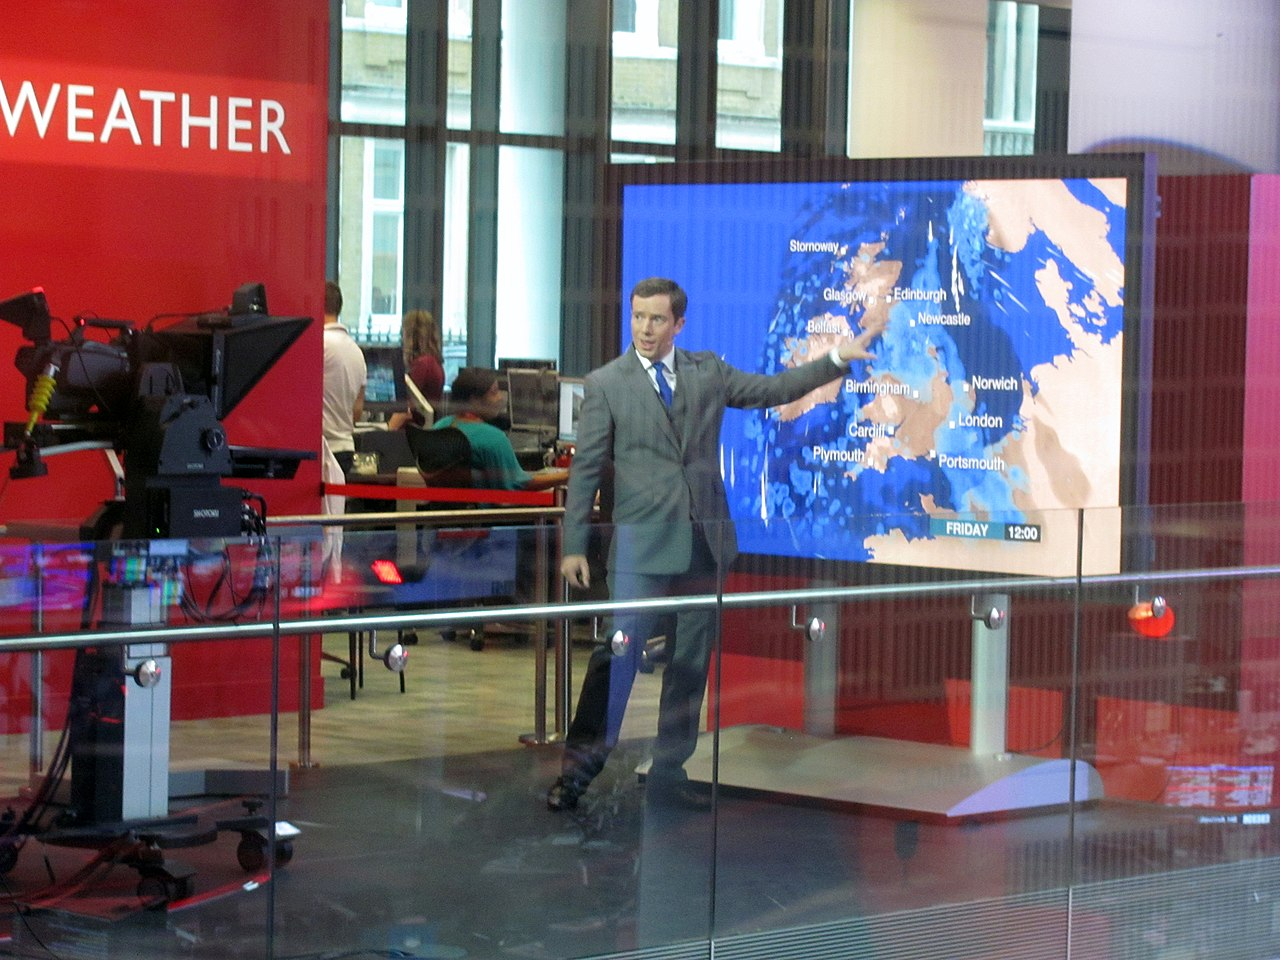 Bbc weather - File Bbc Weather Forecast From Broadcasting House Newsroom Jpg